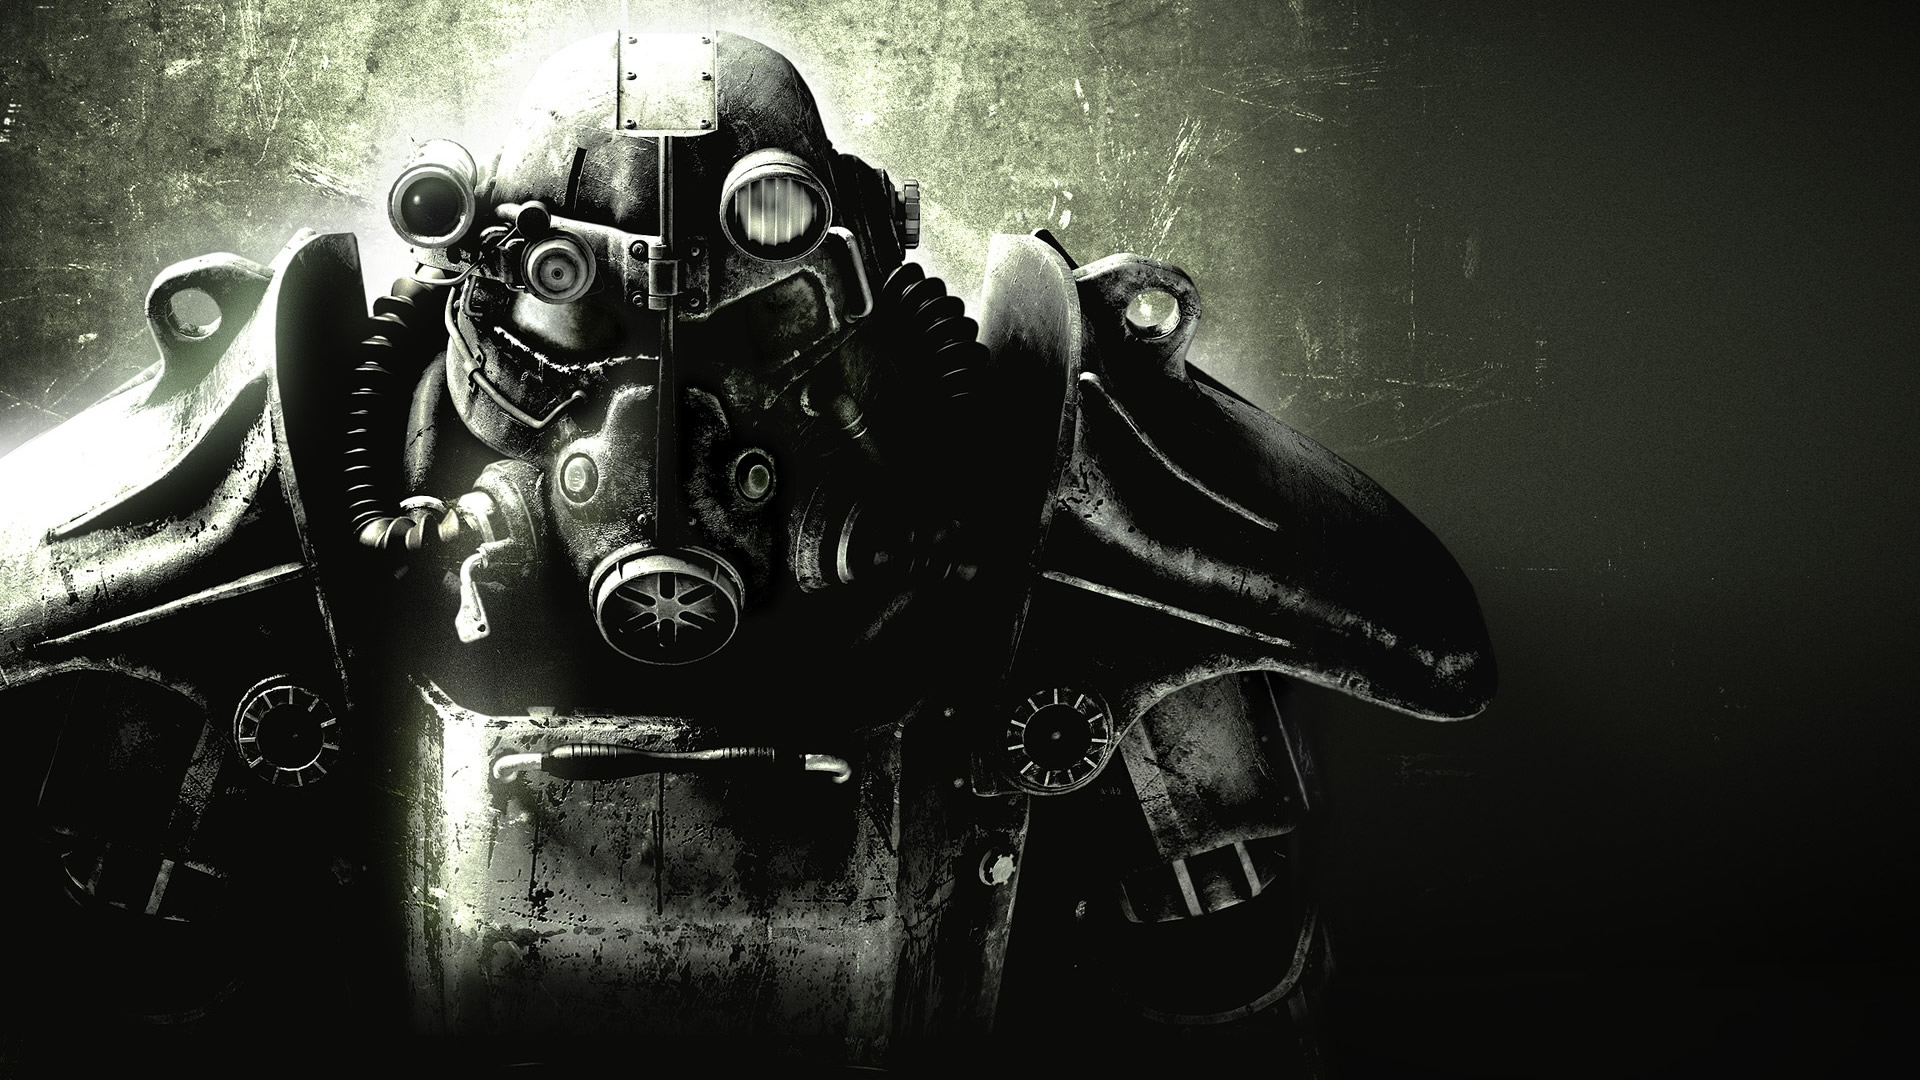 Image fallout fallout 3 hd wallpapersg war among the stars fallout fallout 3 hd wallpapersg thecheapjerseys Images